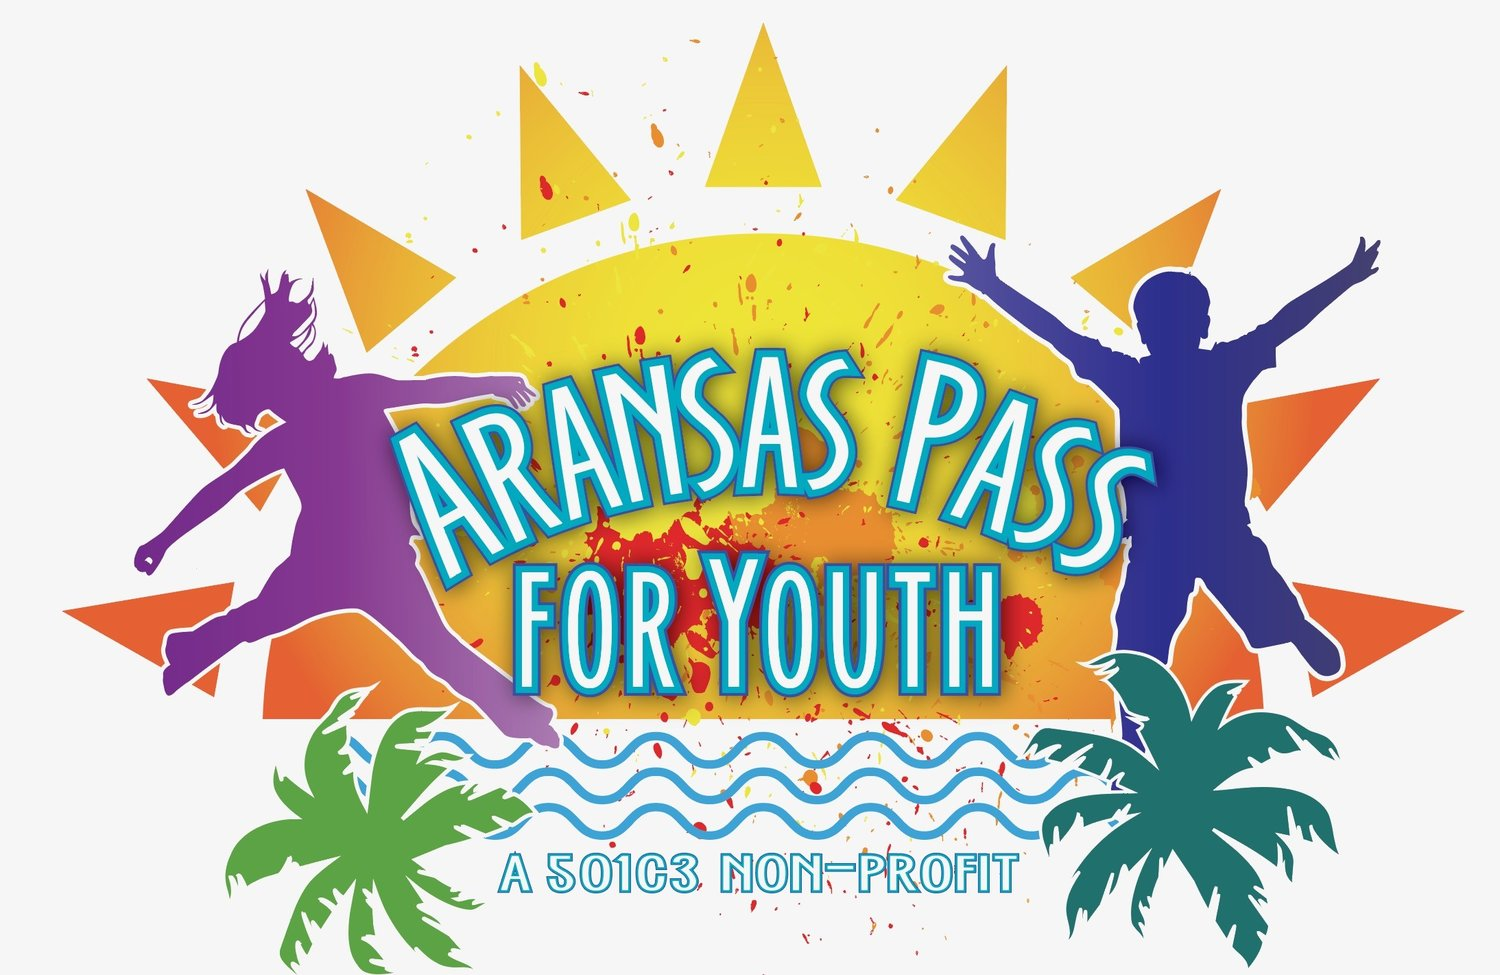 Aransas Pass for Youth